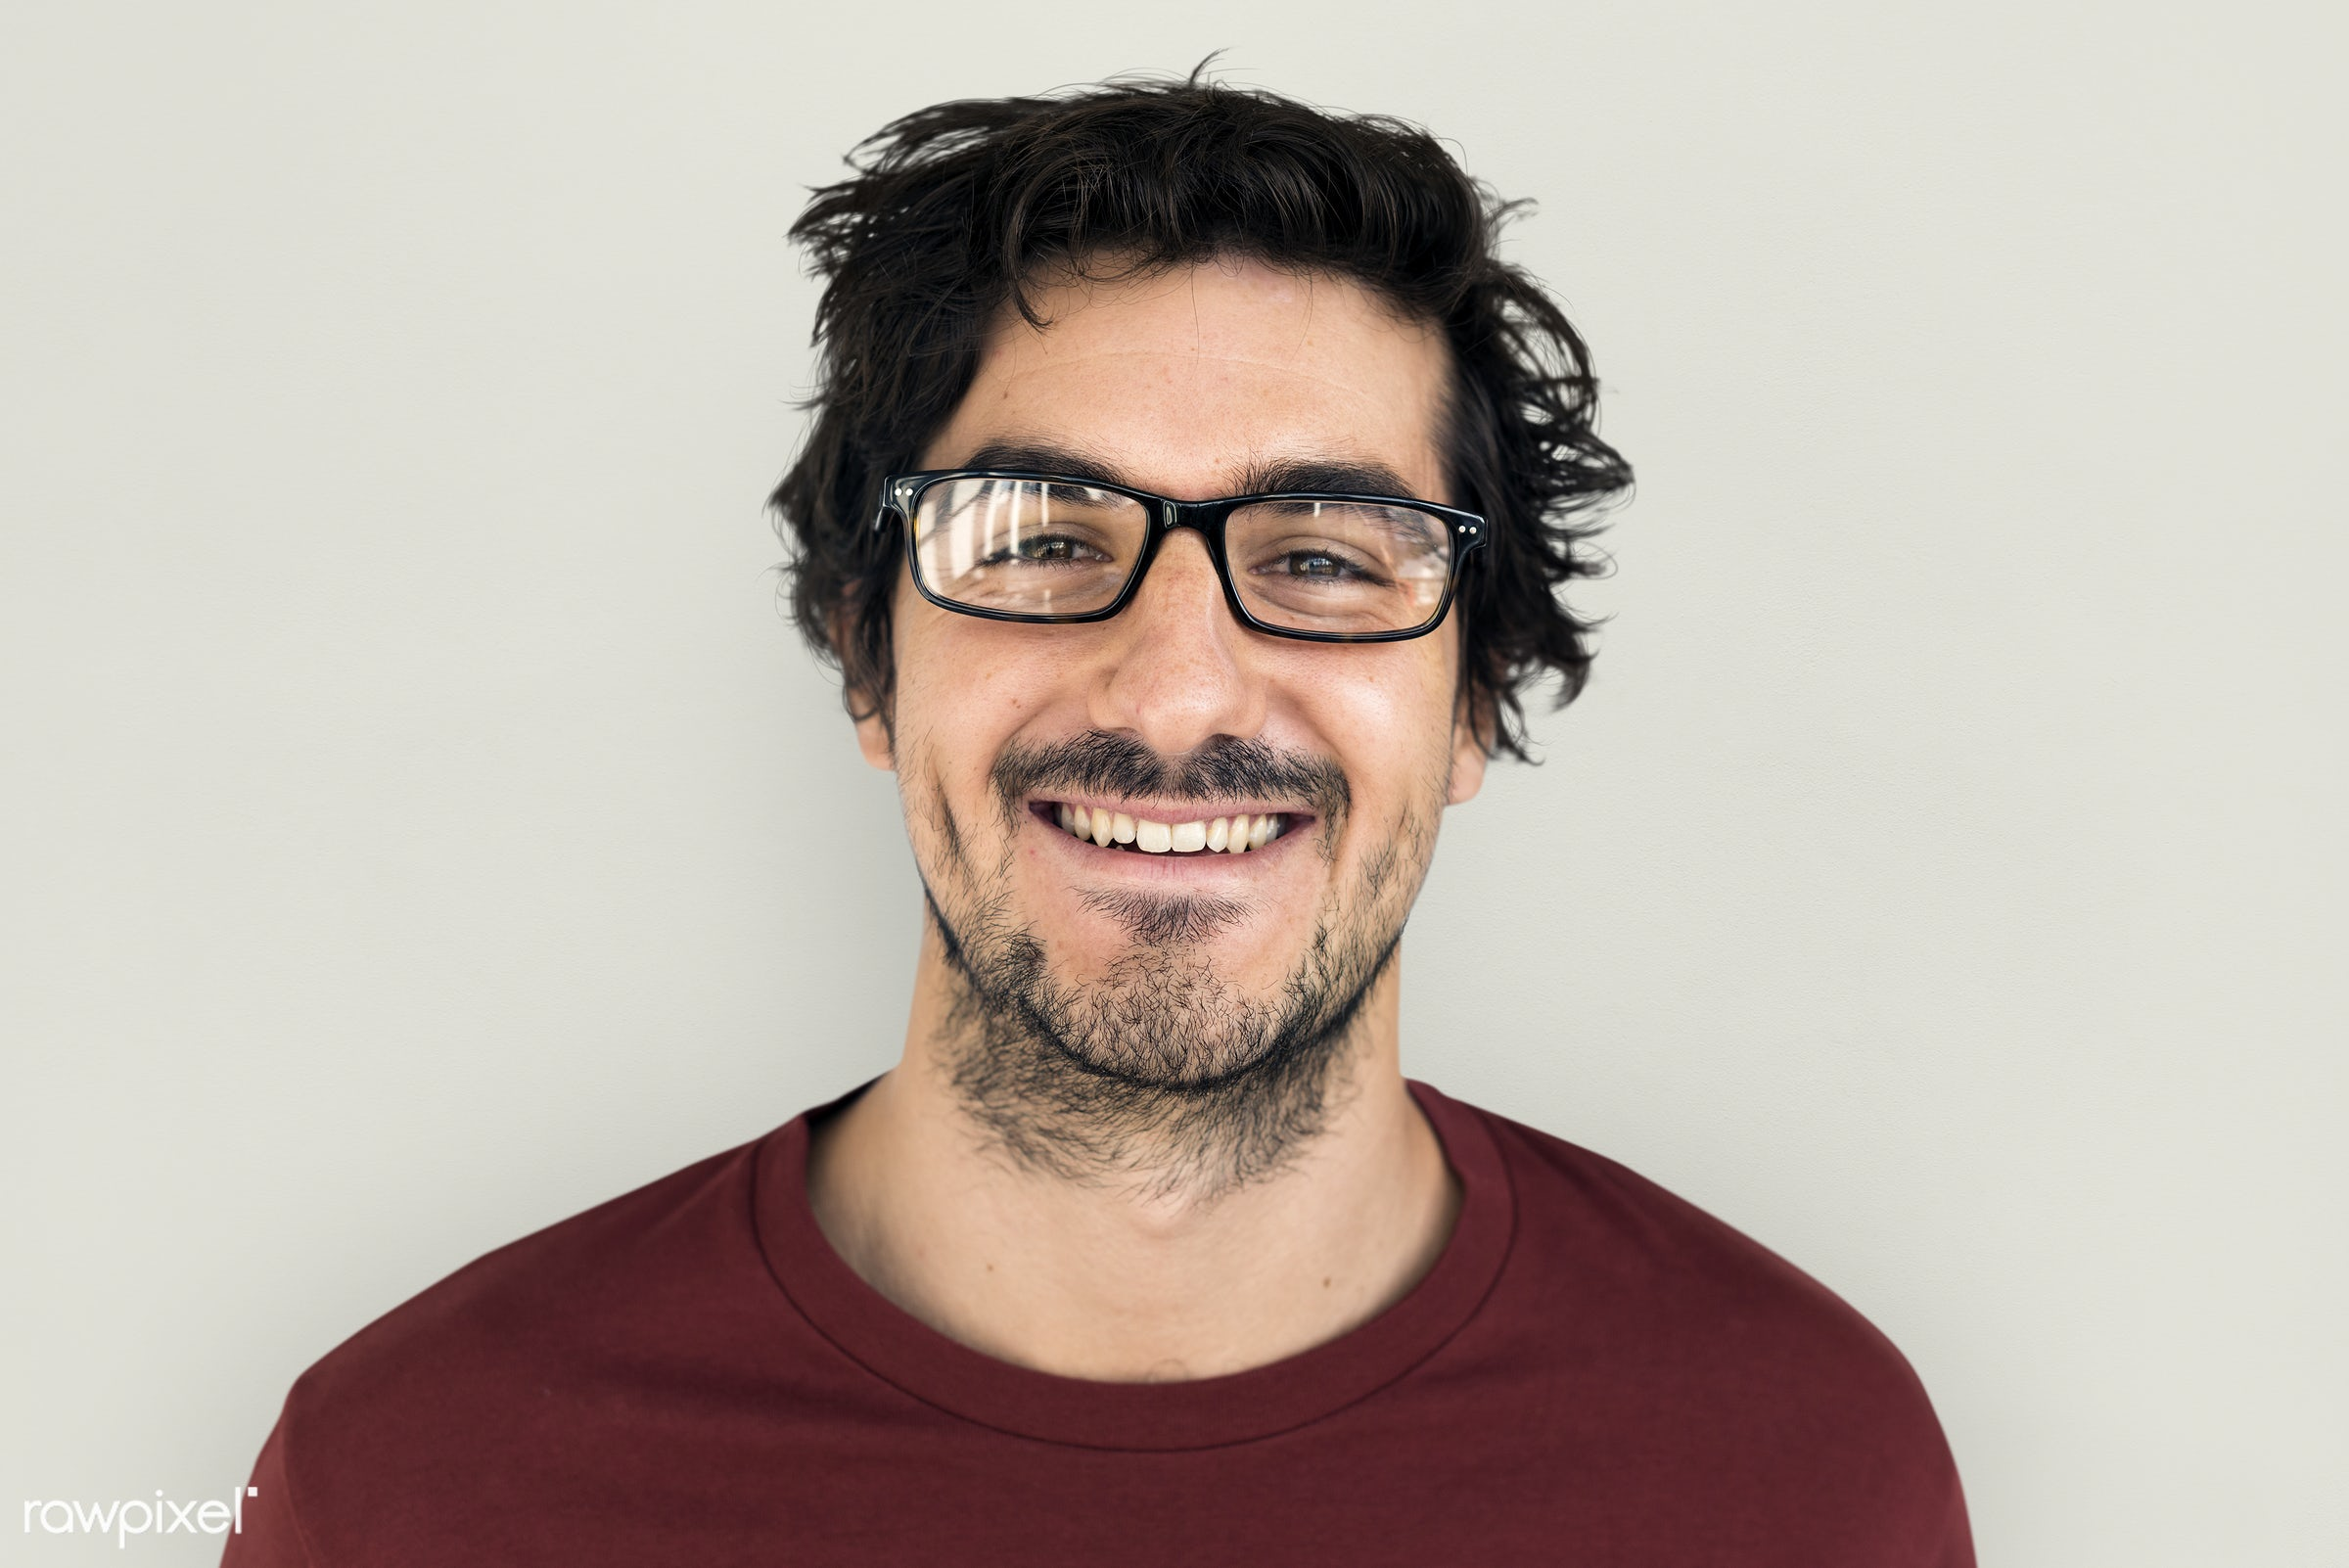 expression, studio, person, glasses, people, caucasian, happy, casual, cheerful, smiling, man, isolated, guy, male, candid,...